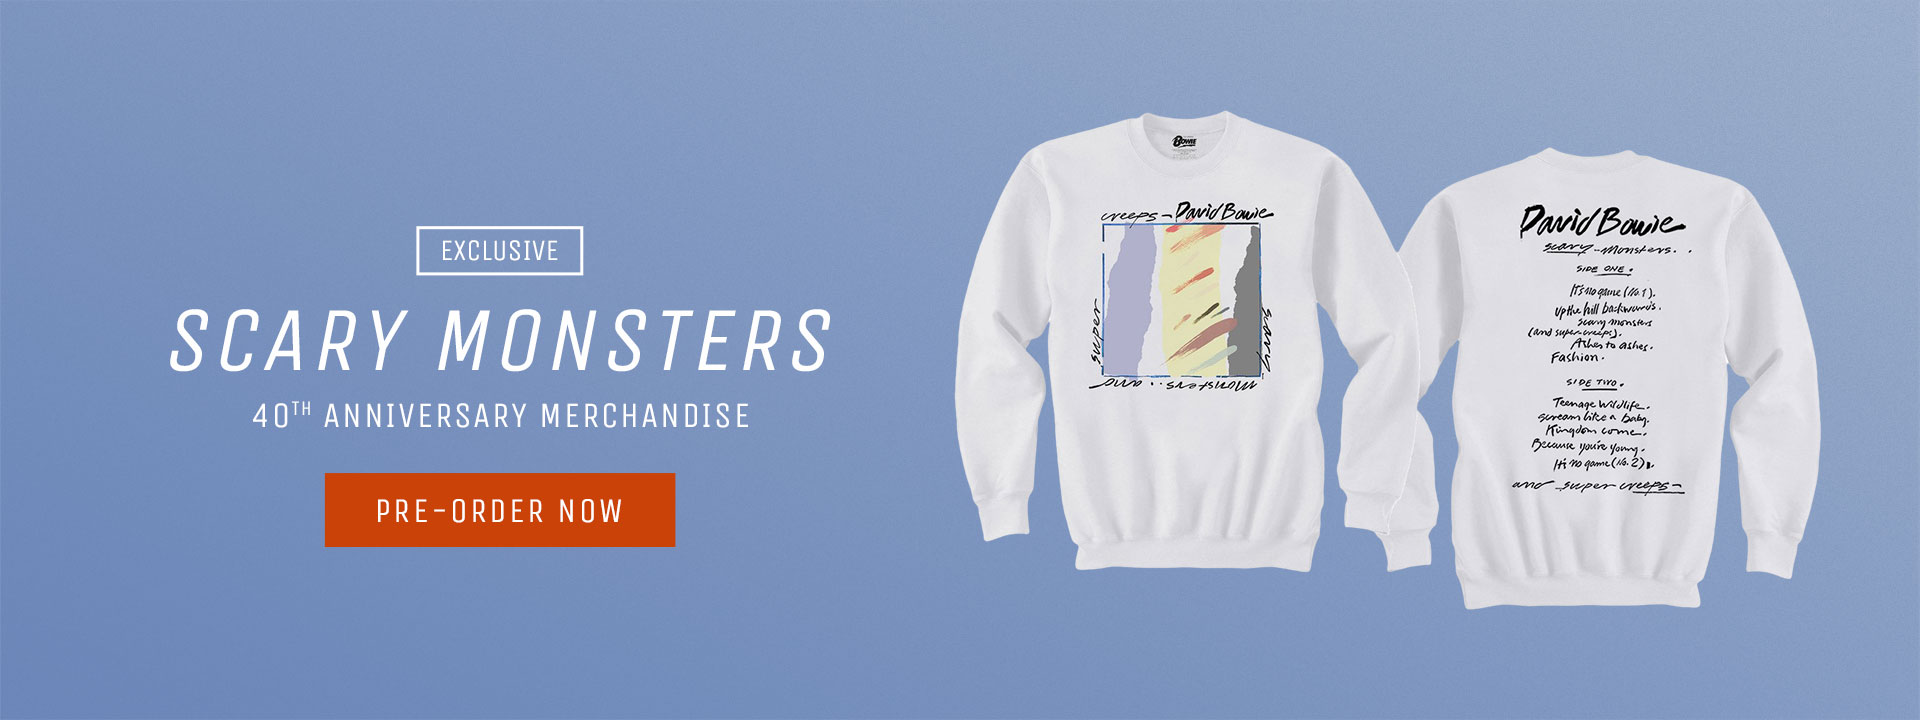 Exclusive Scary Monsters Anniversary Merchandise